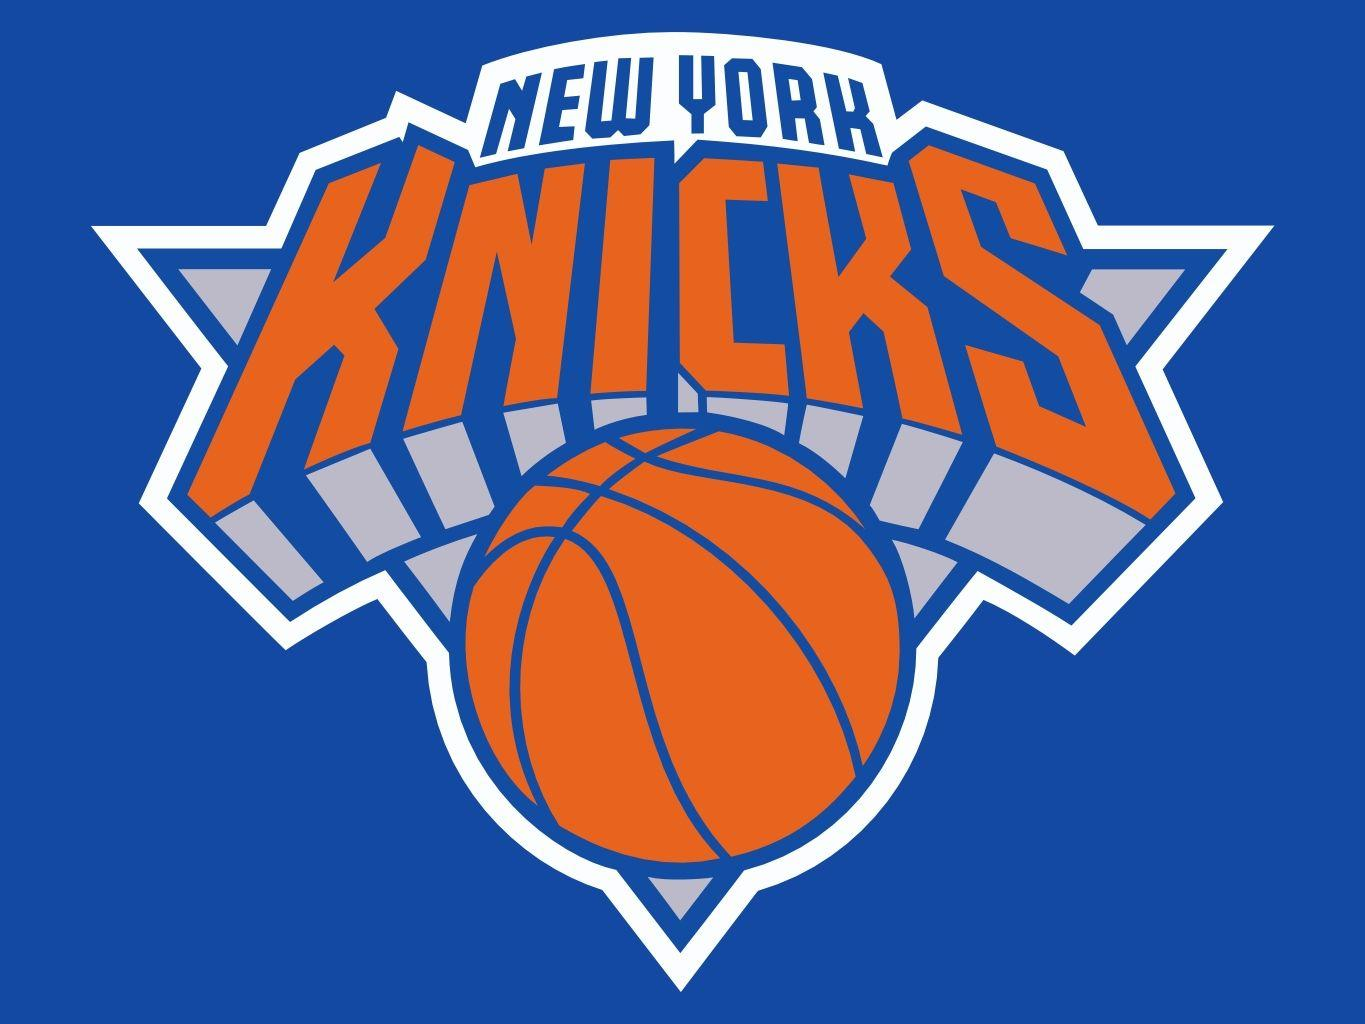 New York Knicks Wallpapers PC Desktop | Full HD Pictures